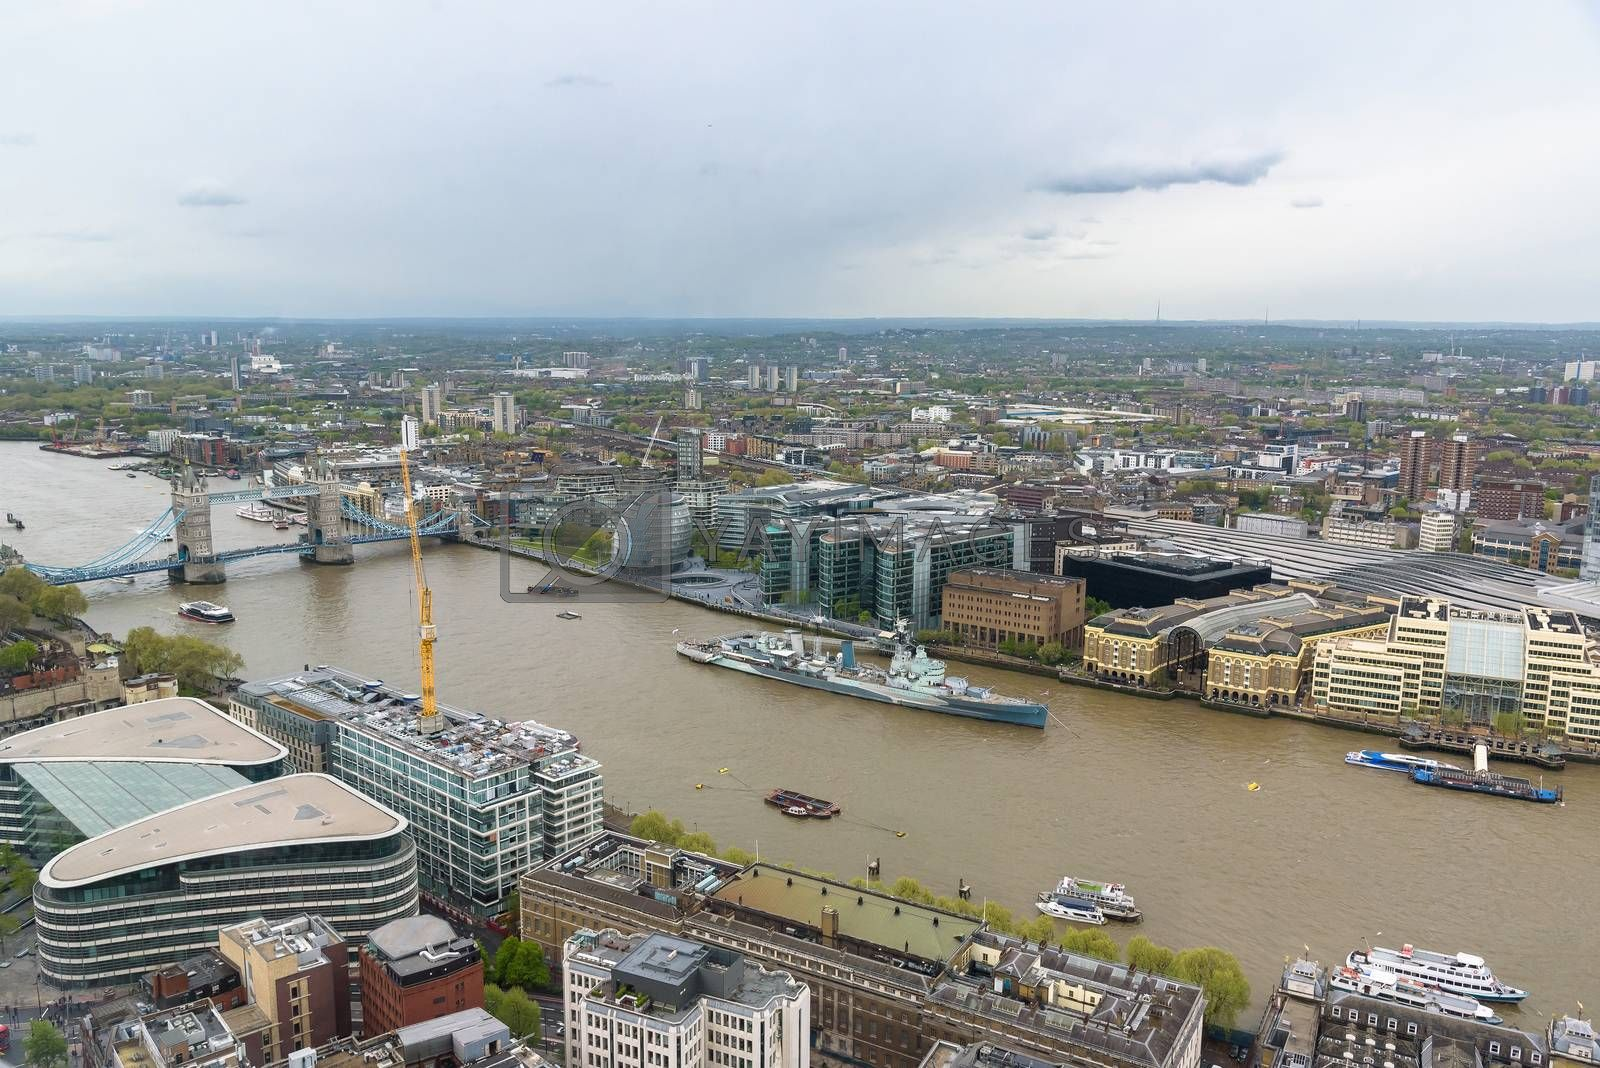 Aerial view of the river Thames in London on a cloudy day, UK